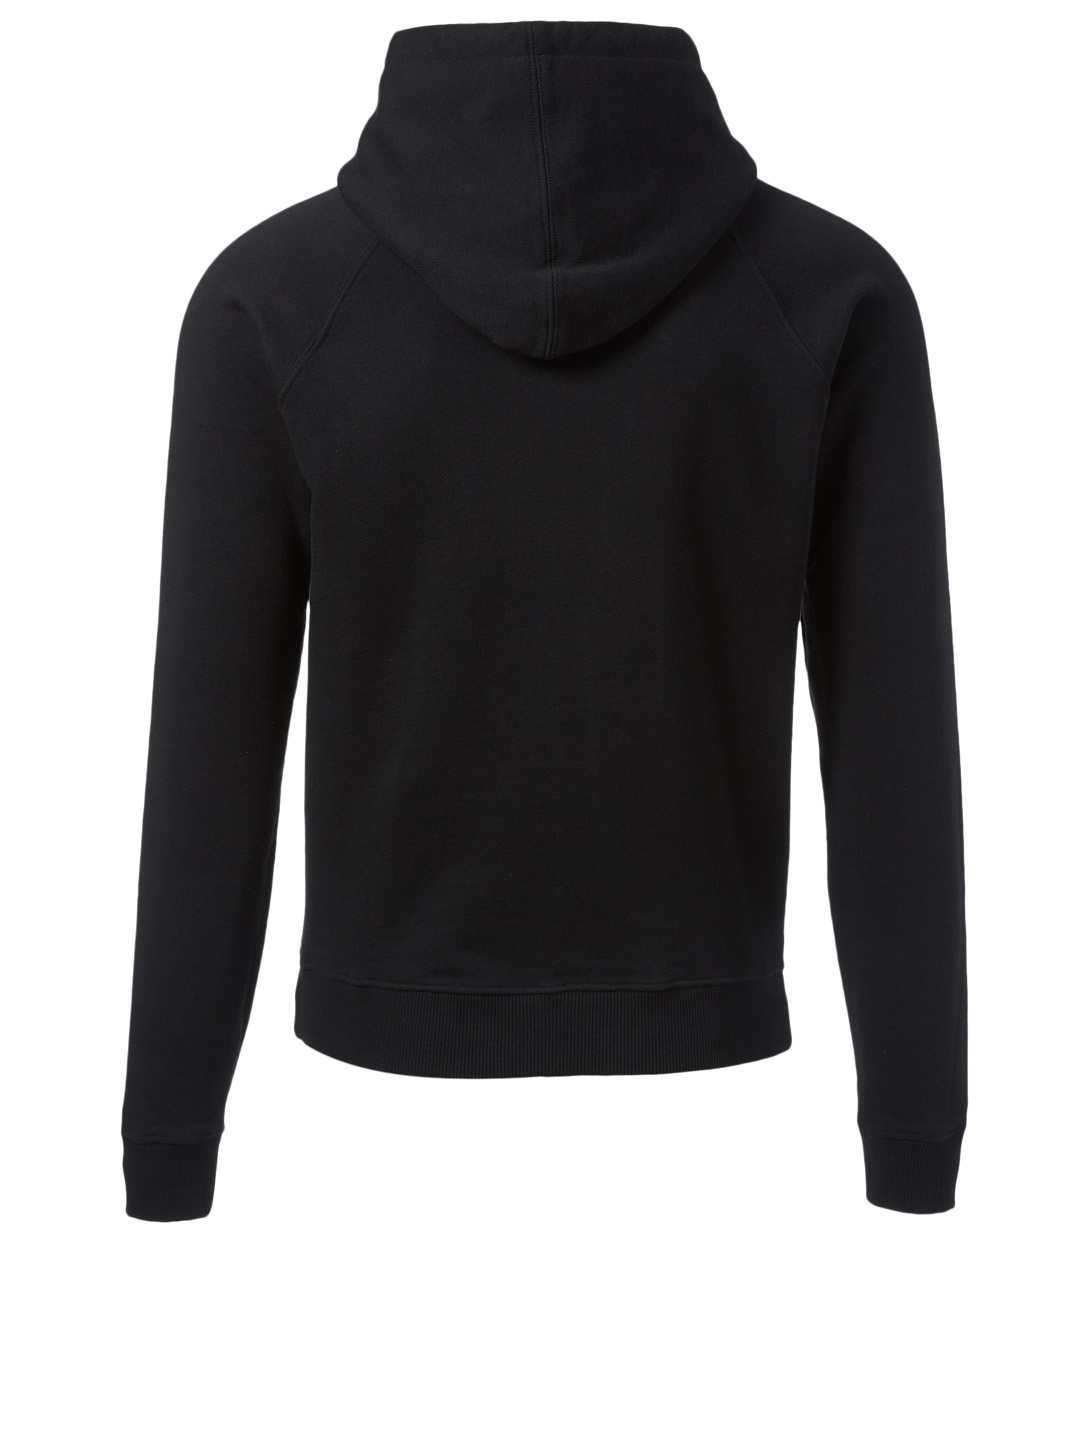 SAINT LAURENT 24 University Cotton Hoodie Men's Black